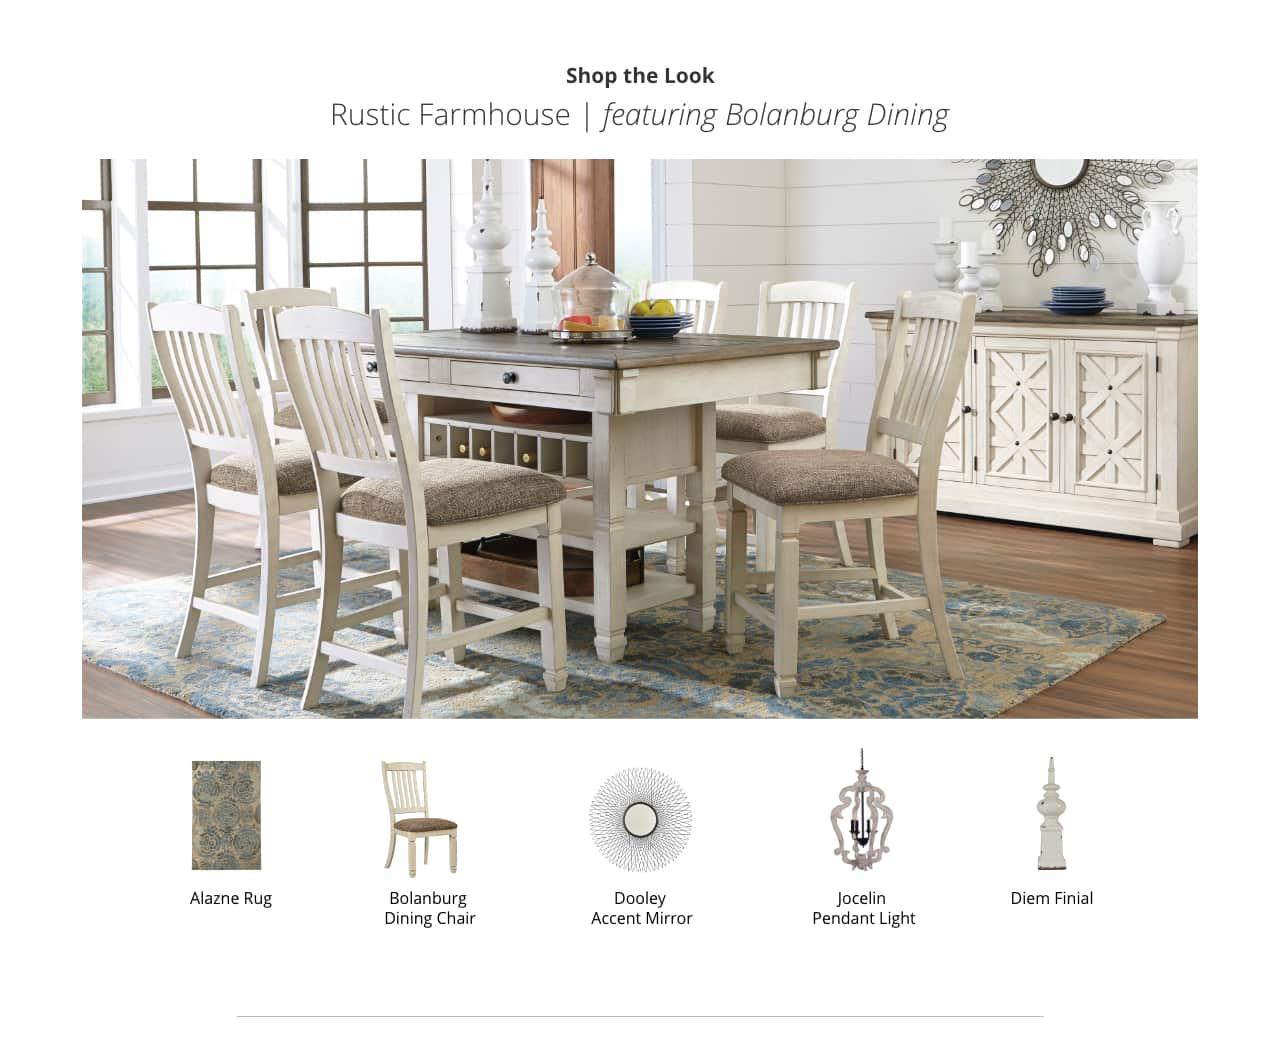 Rustic Farmhouse Bolanburg Dining